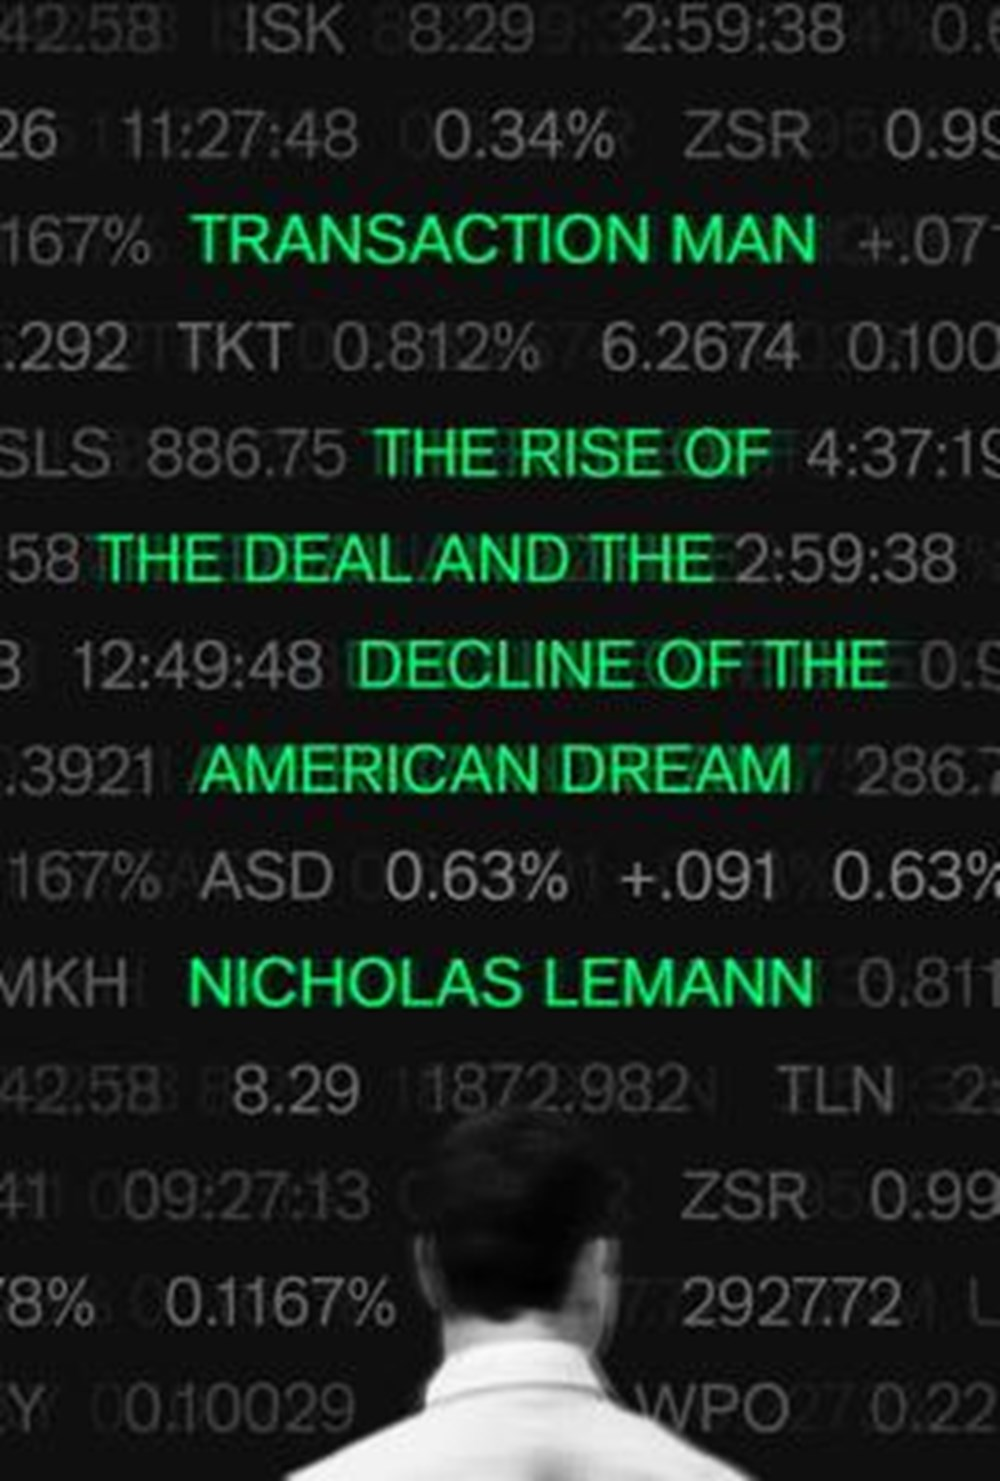 Transaction Man The Rise of the Deal and the Decline of the American Dream